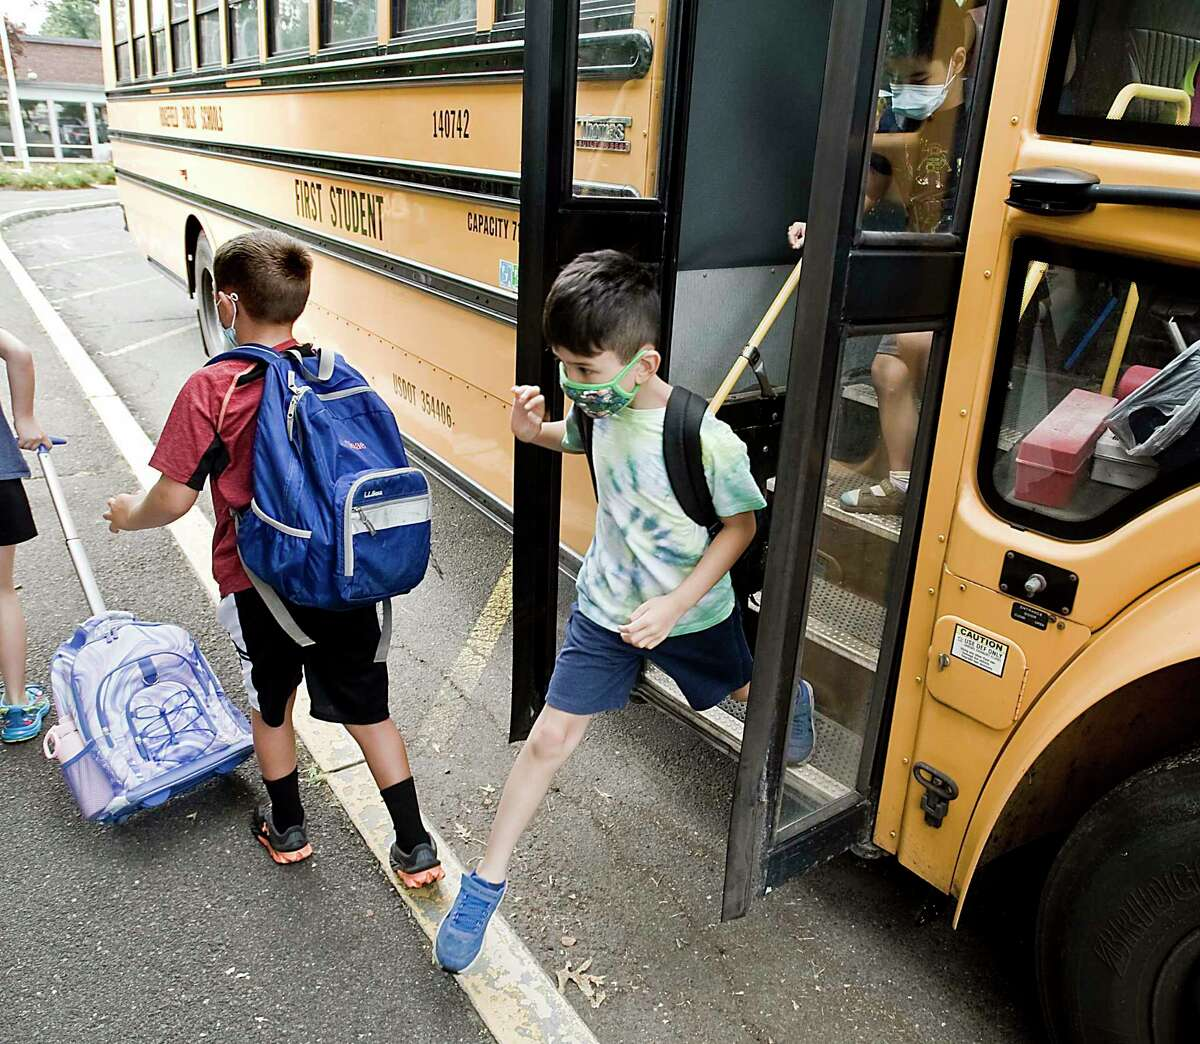 Children arrive for the first day of school at Veterans Park Elementary in Ridgefield. Monday, Aug. 30, 2021.